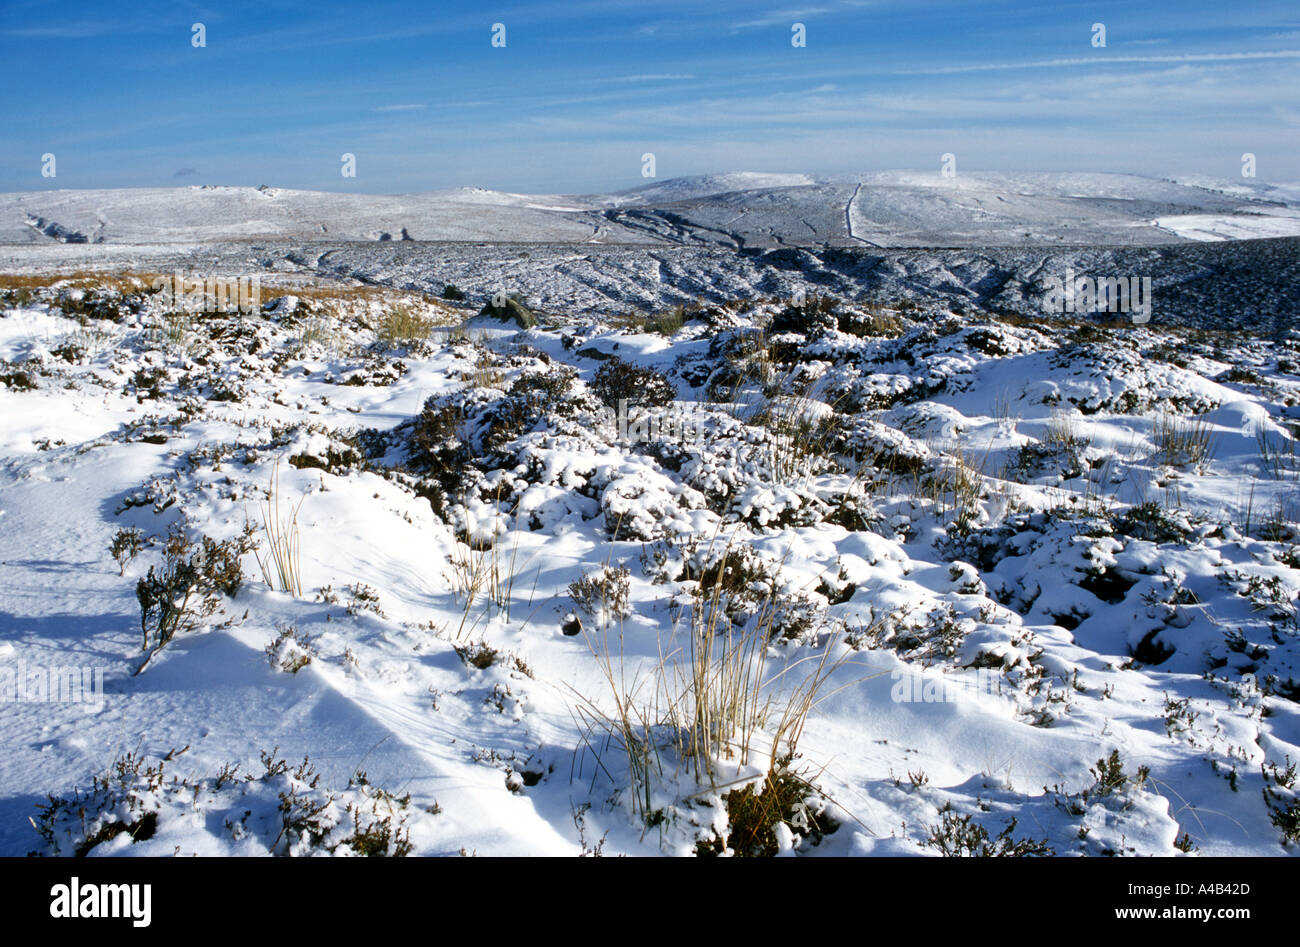 Dartmoor in Winter View from Warren House Inn, Dartmoor, Devon, England - Stock Image